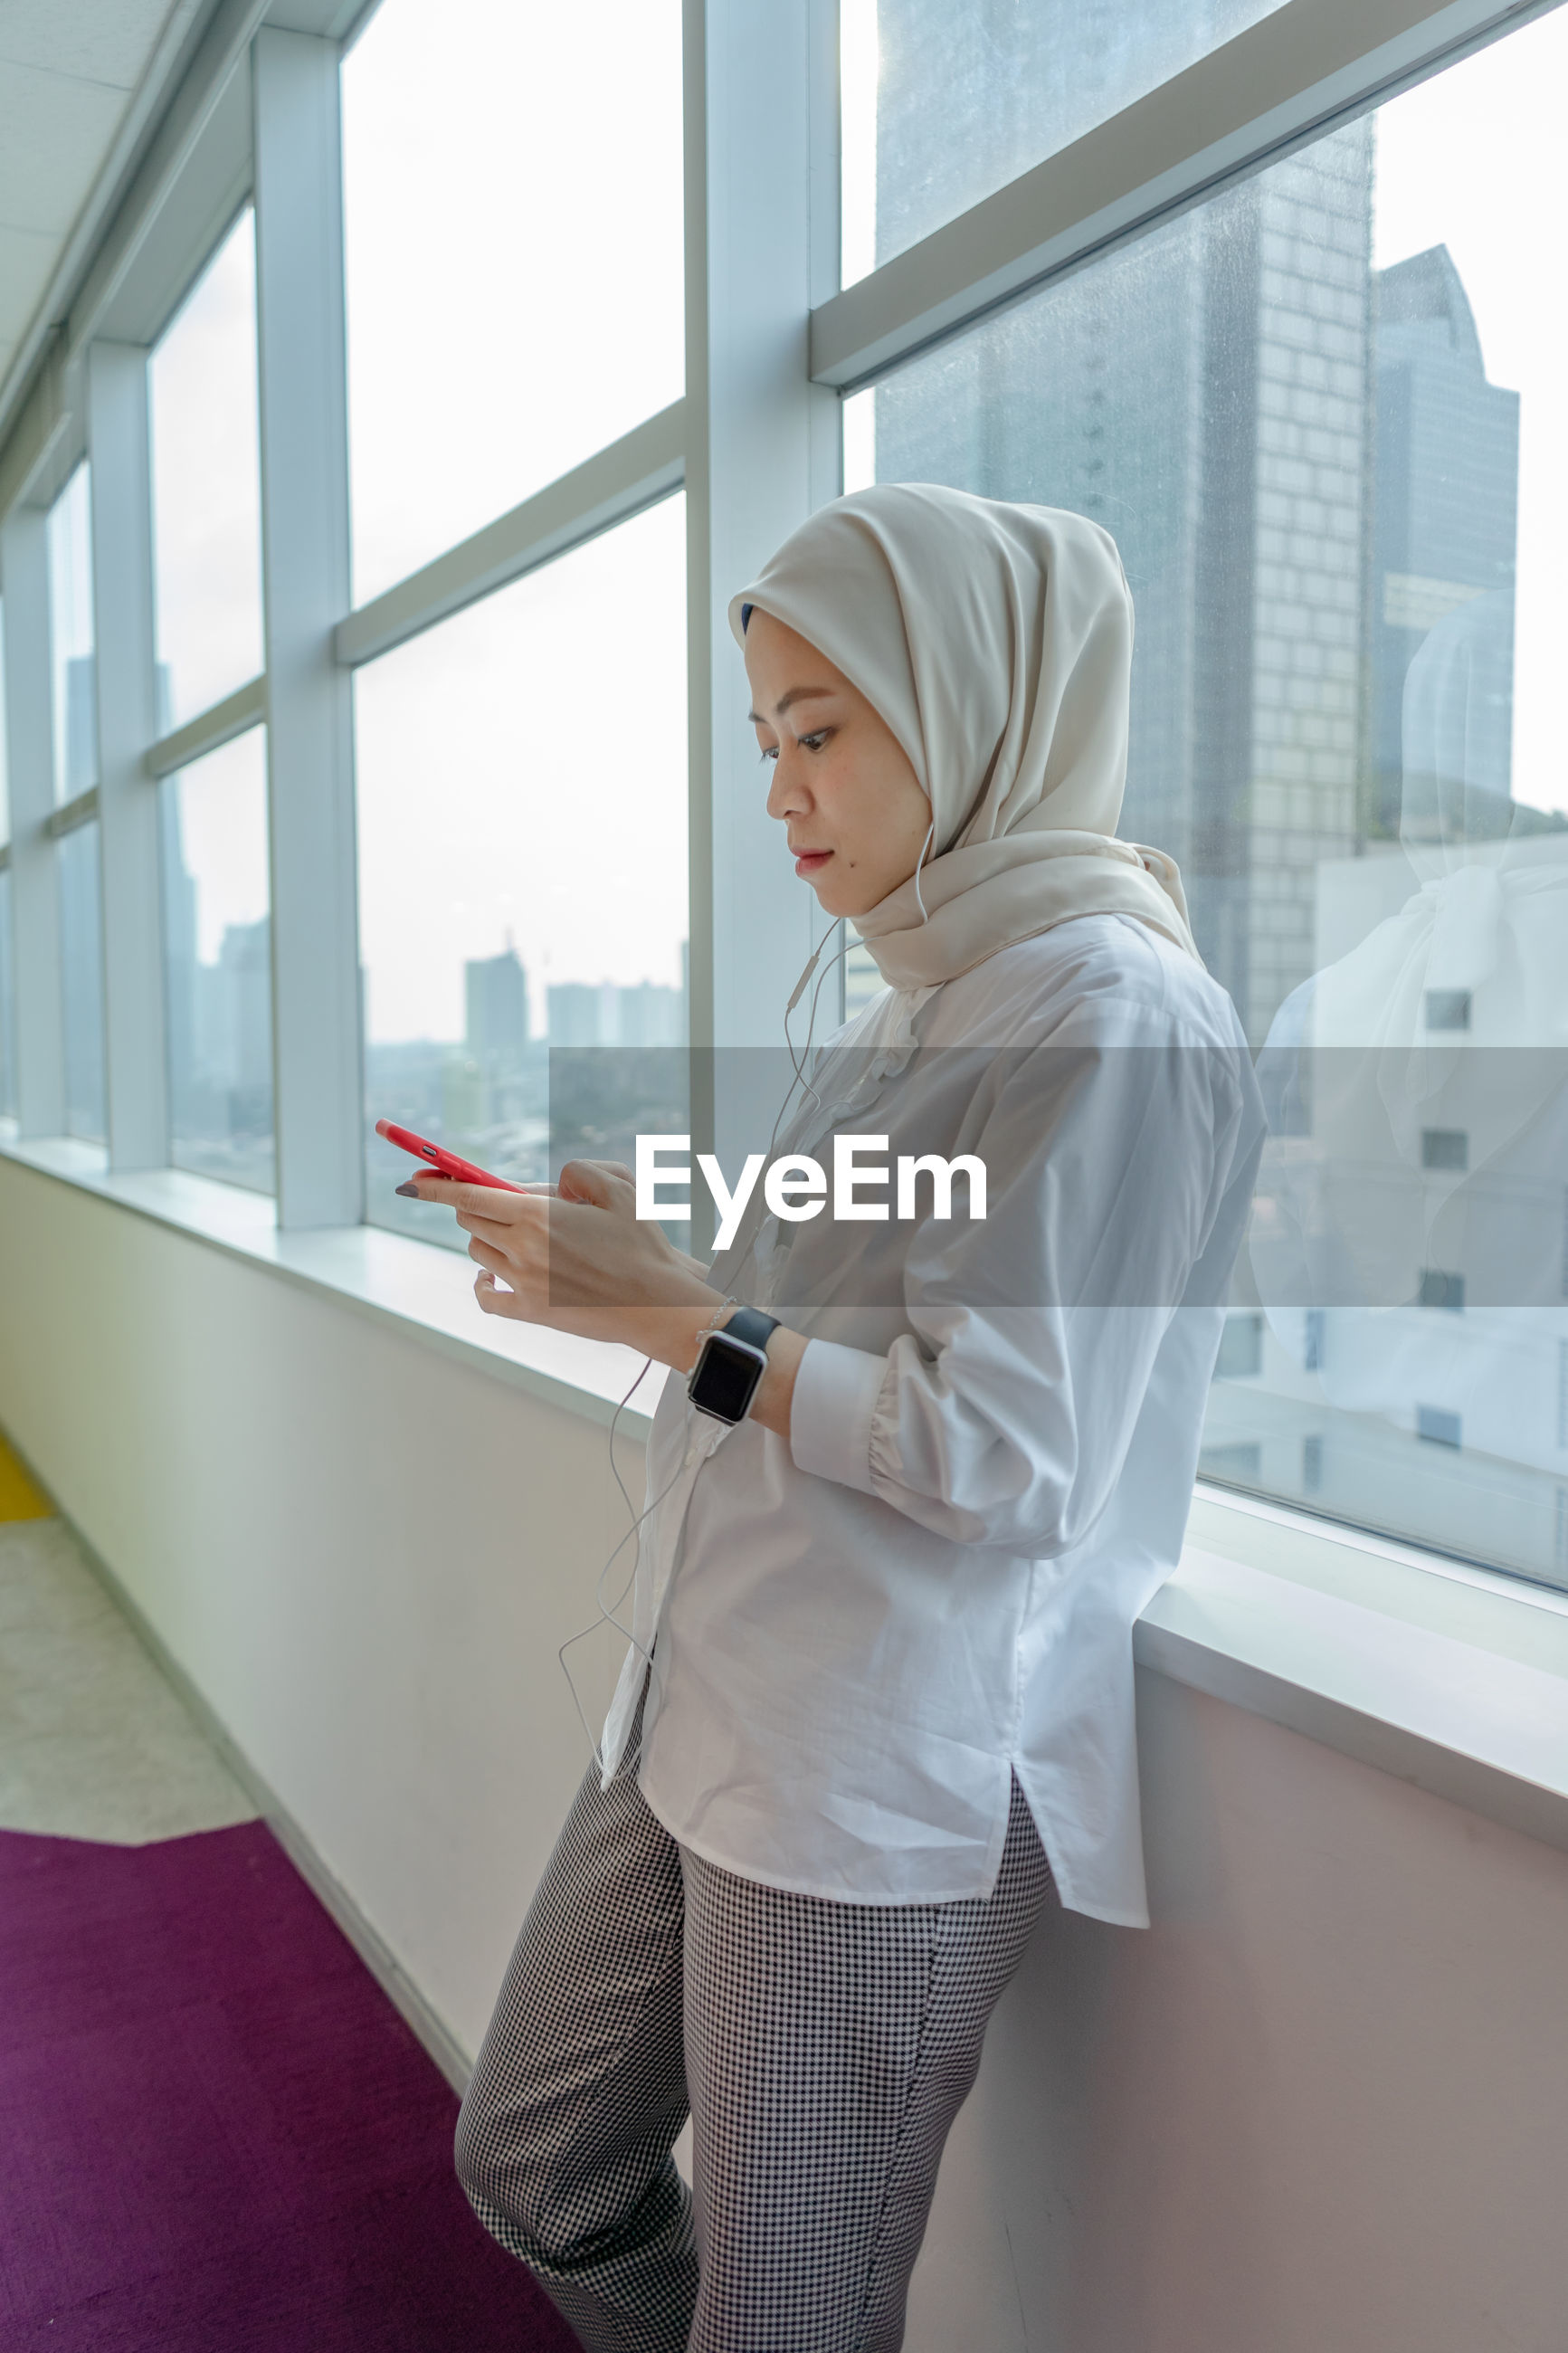 SIDE VIEW OF WOMAN USING SMART PHONE